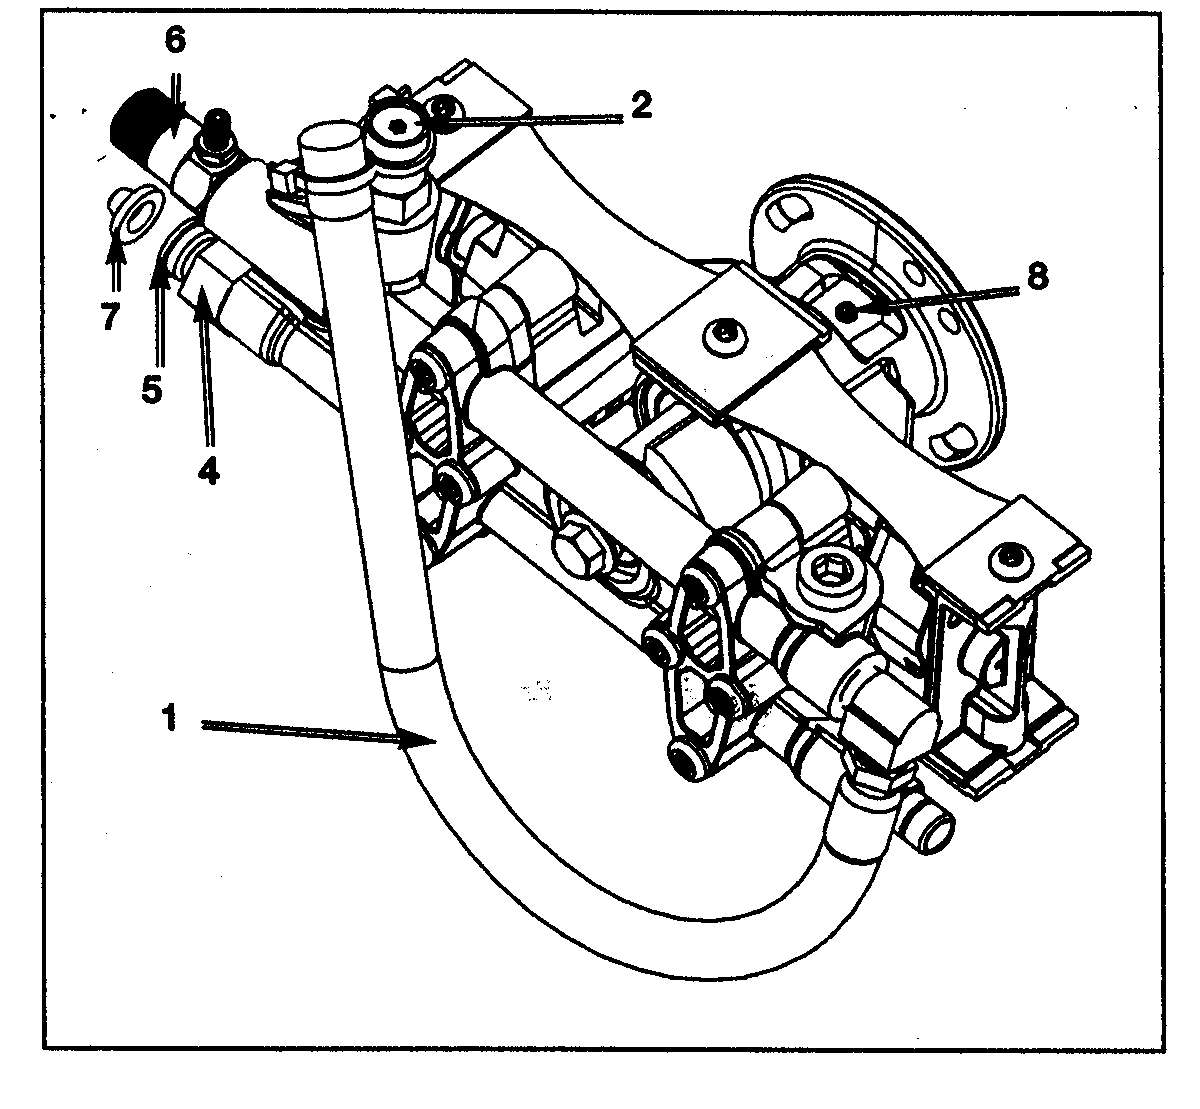 Diagram: Craftsman Pressure Washer Pump Parts Diagram intended for Honda Pressure Washer Pump Parts Diagram